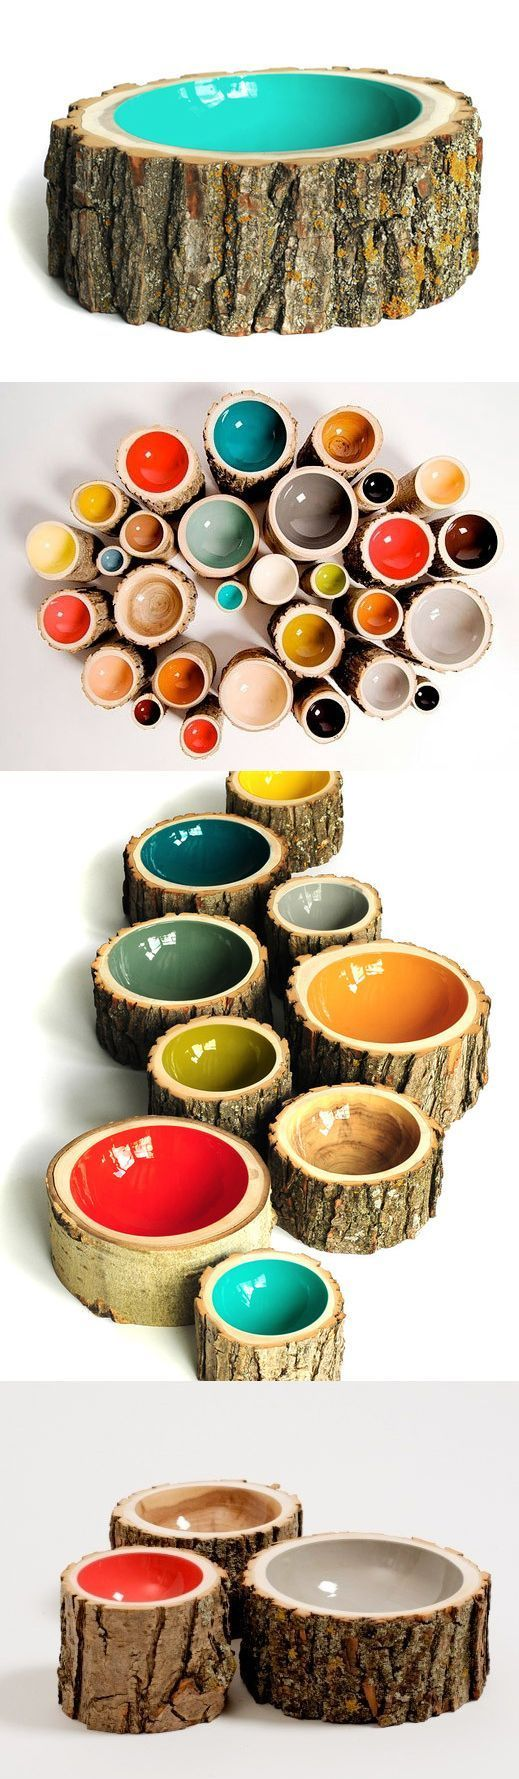 tree log bowls! #LOVE!!!!!!! Más